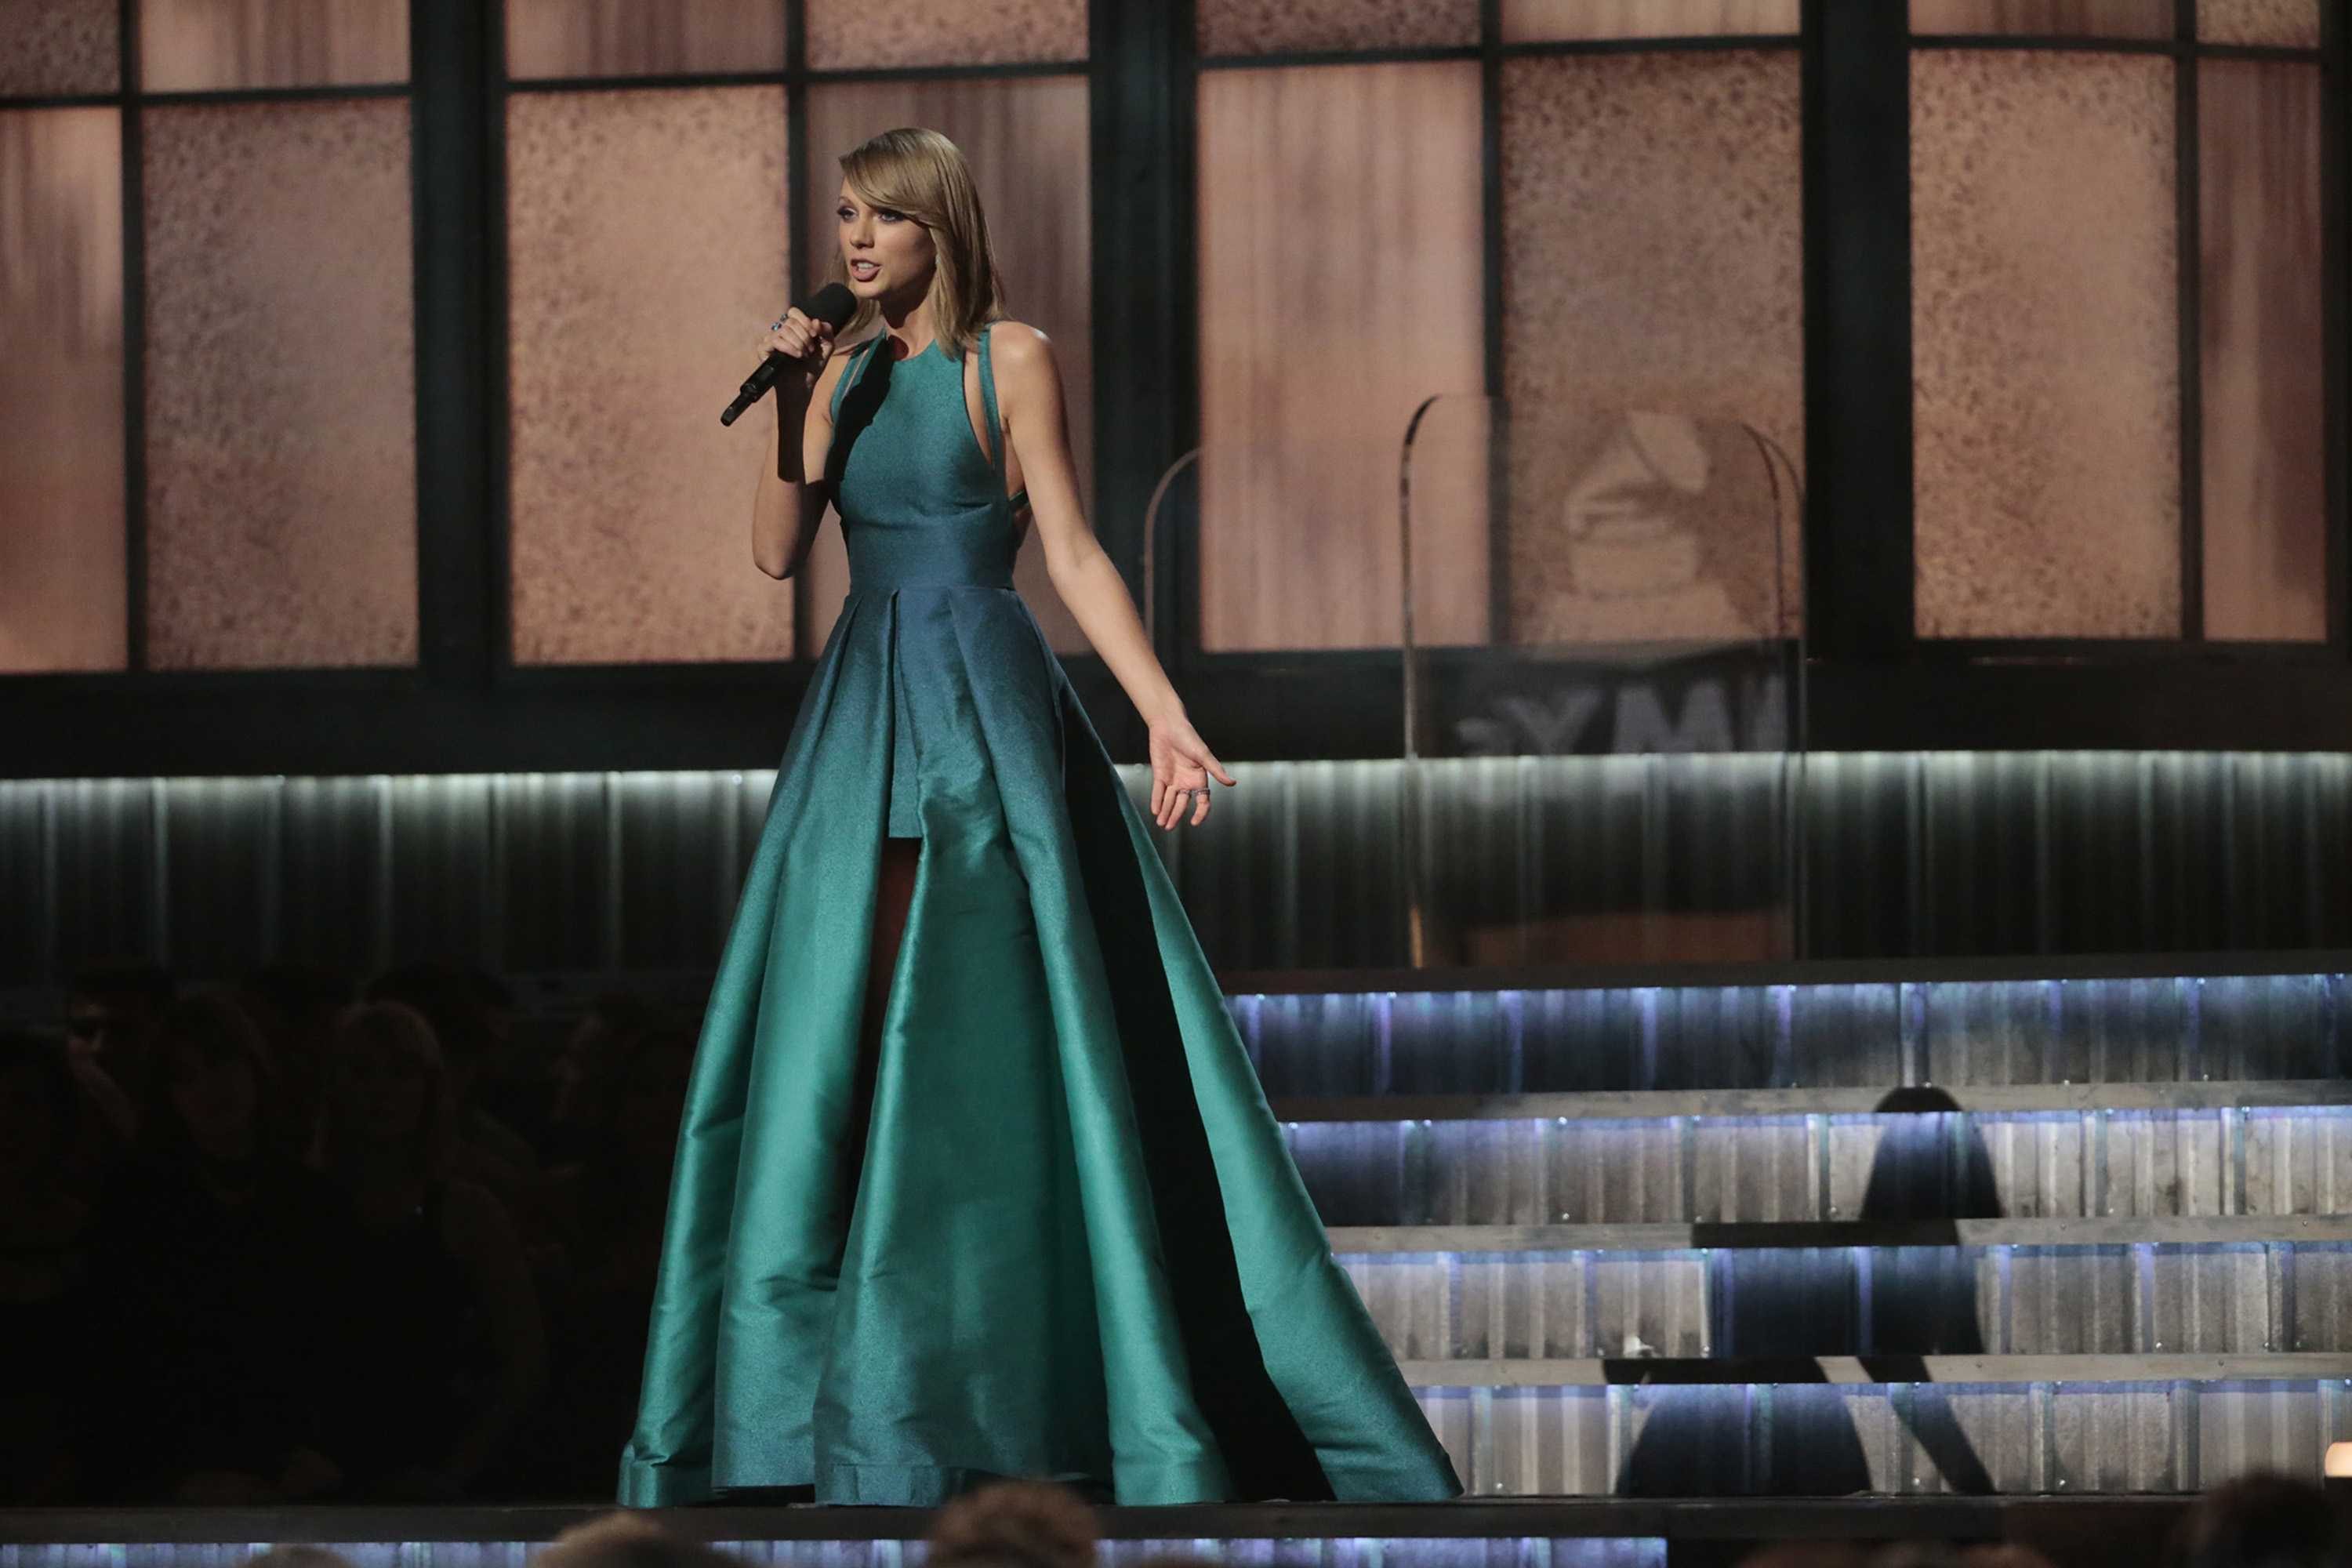 Taylor+Swift+on+stage+at+the+57th+Annual+Grammy+Awards+at+Staples+Center+in+Los+Angeles+on+Sunday%2C+Feb.+8%2C+2015.+%28Robert+Gauthier%2FTNS%29